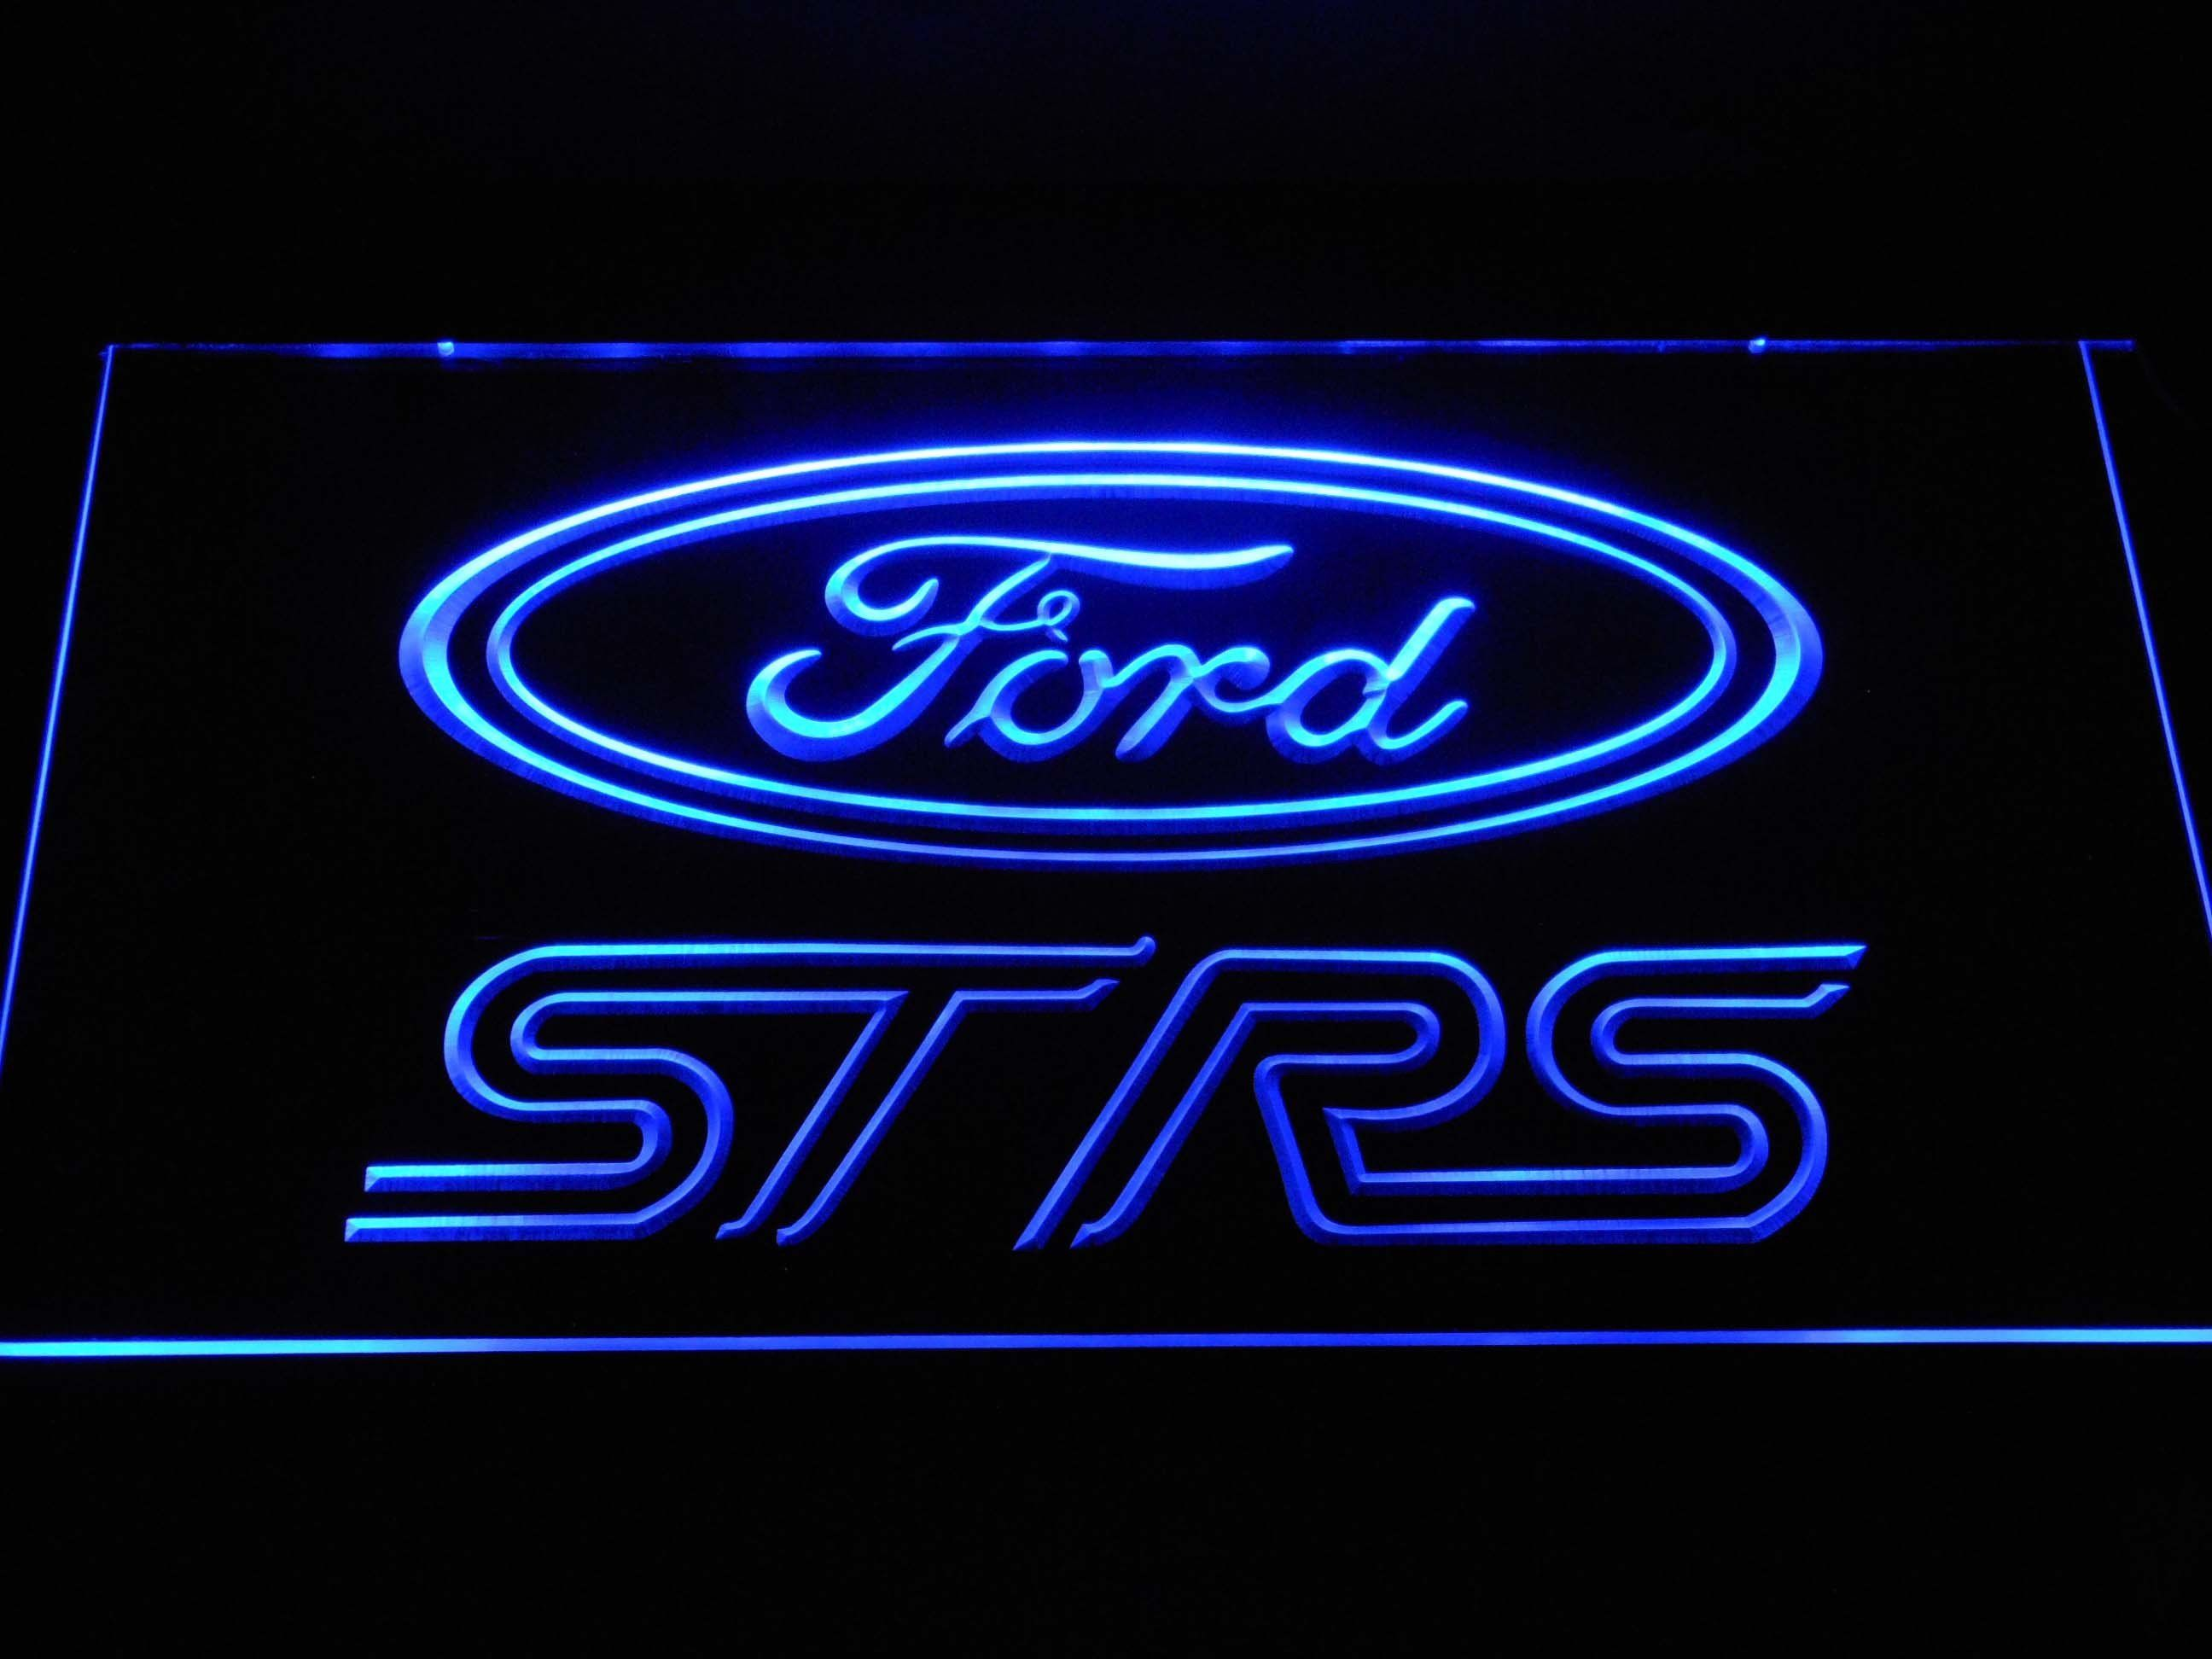 Ford ST/RS Logo LED Neon Sign   Led neon signs, Neon signs ...